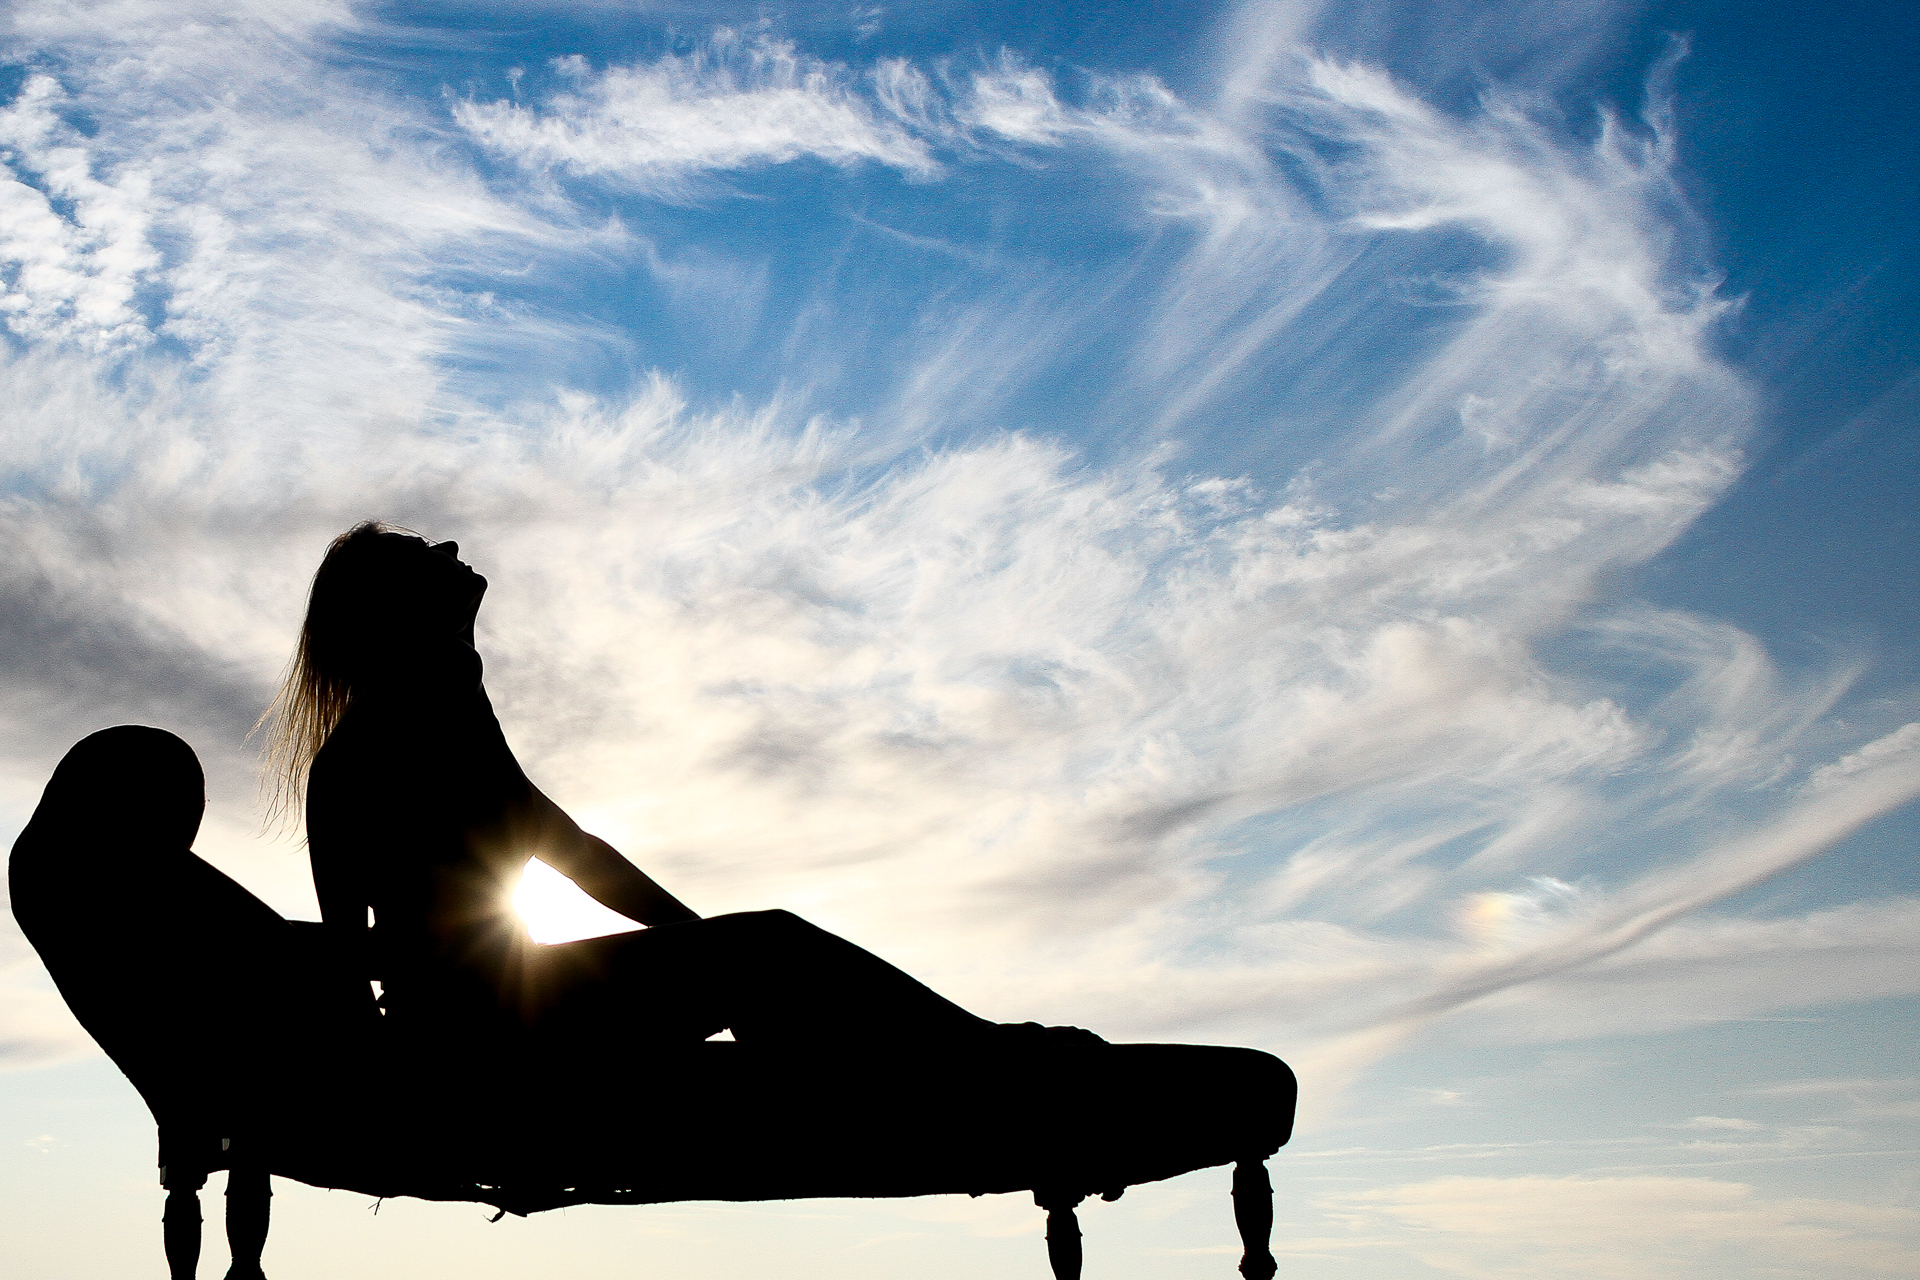 Set against a vivid blue sky populated with cirrus clouds Liz who is seen in silhouette sat on a Chaise Lounge. The sun can be seen poking out just between her stomach and her outstretched arm.